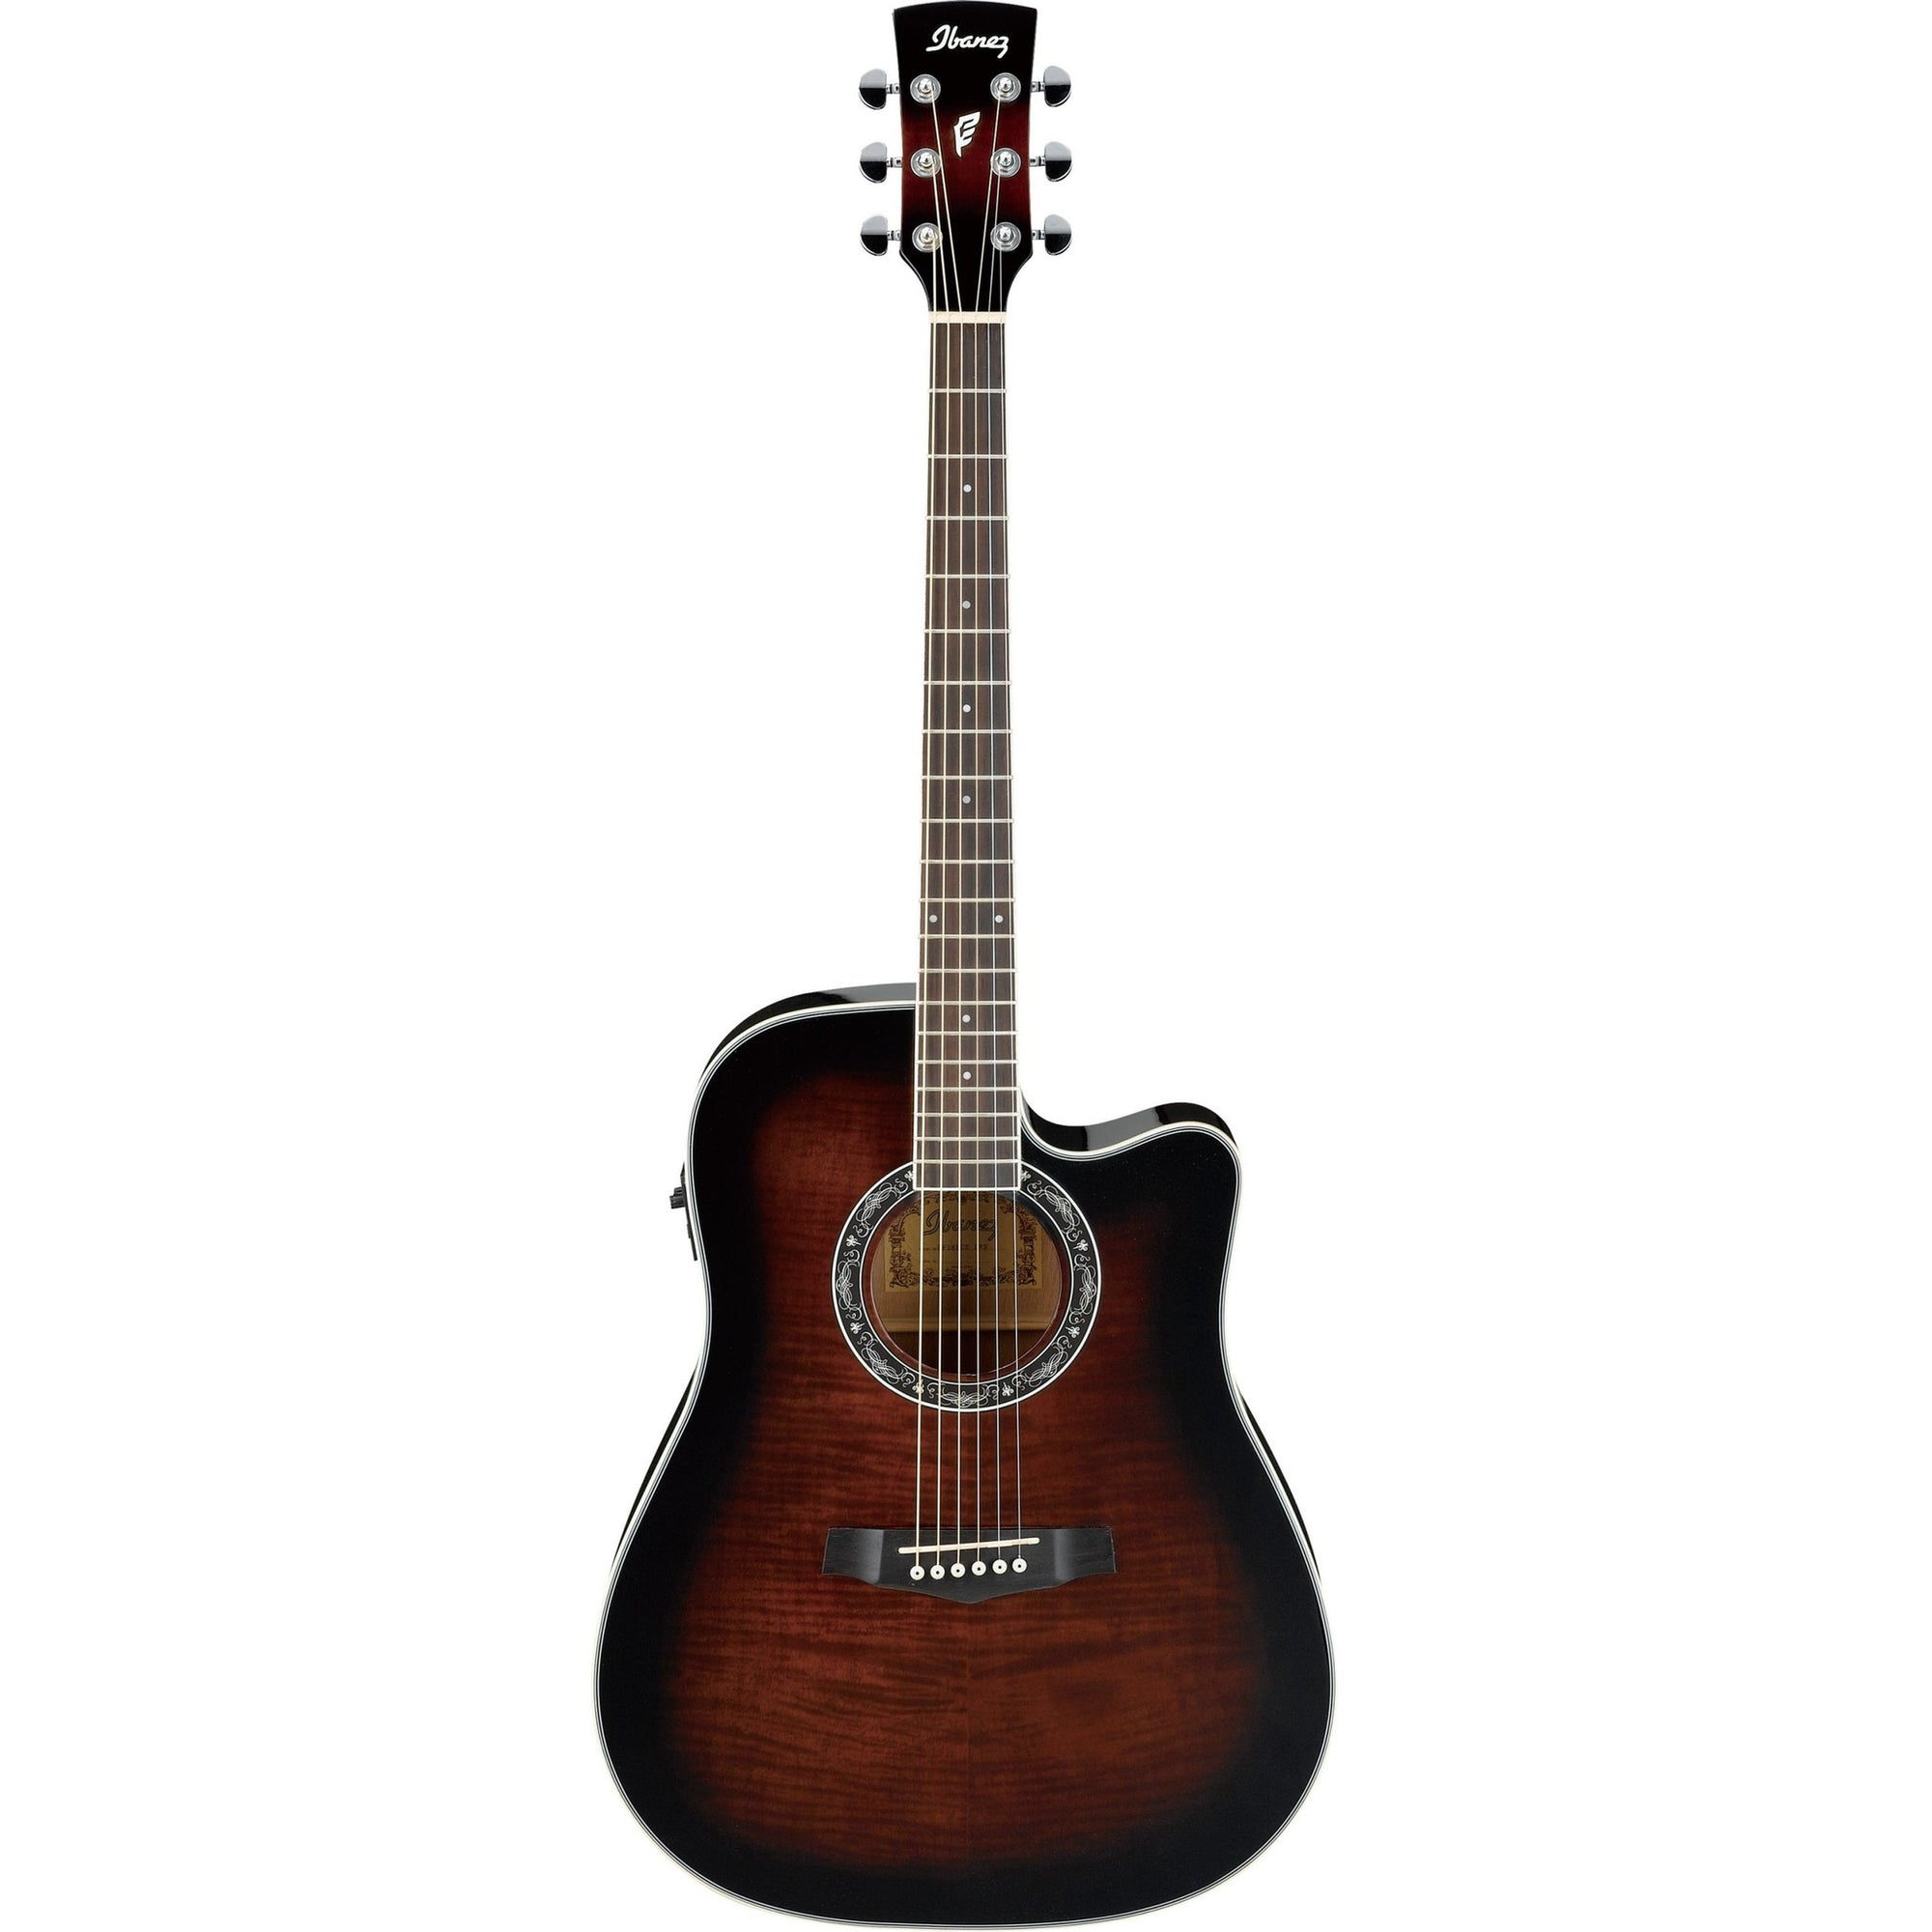 Ibanez PF28ECE-DVS Performance Acoustic-Electric Guitar - Dark Violin Sunburst